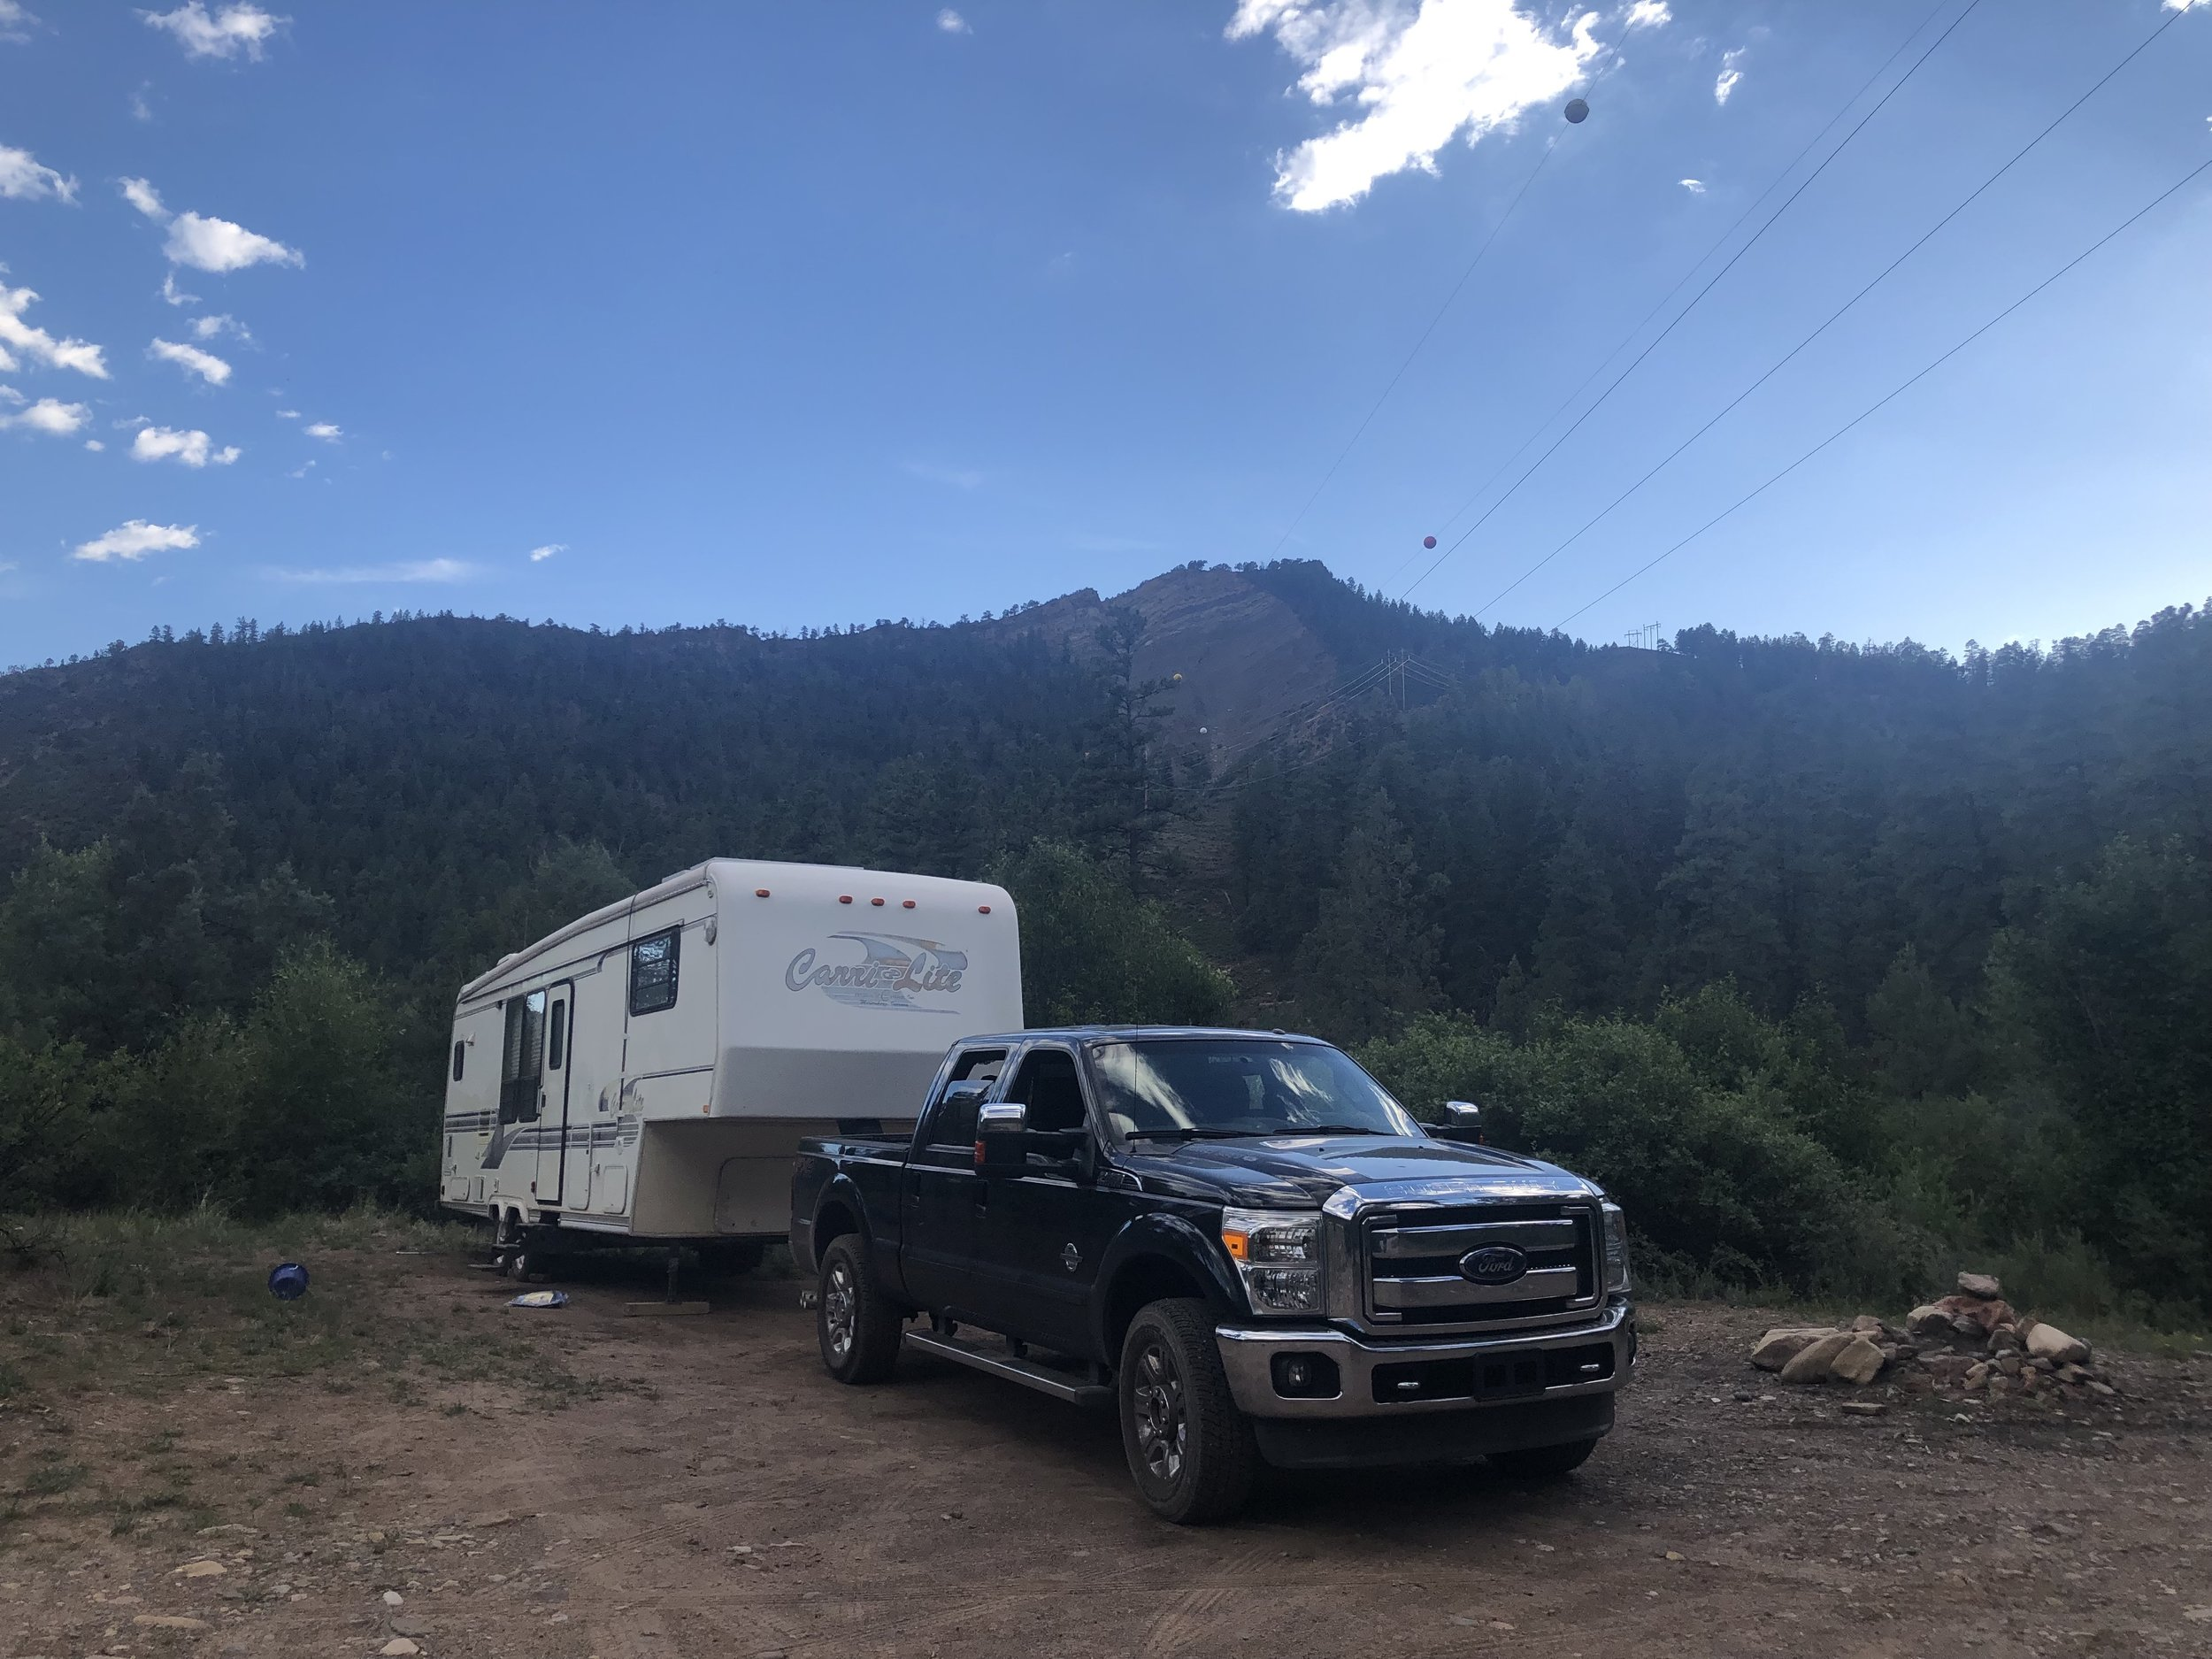 The first site we camped at. We moved about halfway through the week after taking the trailer into town to dump the tanks.